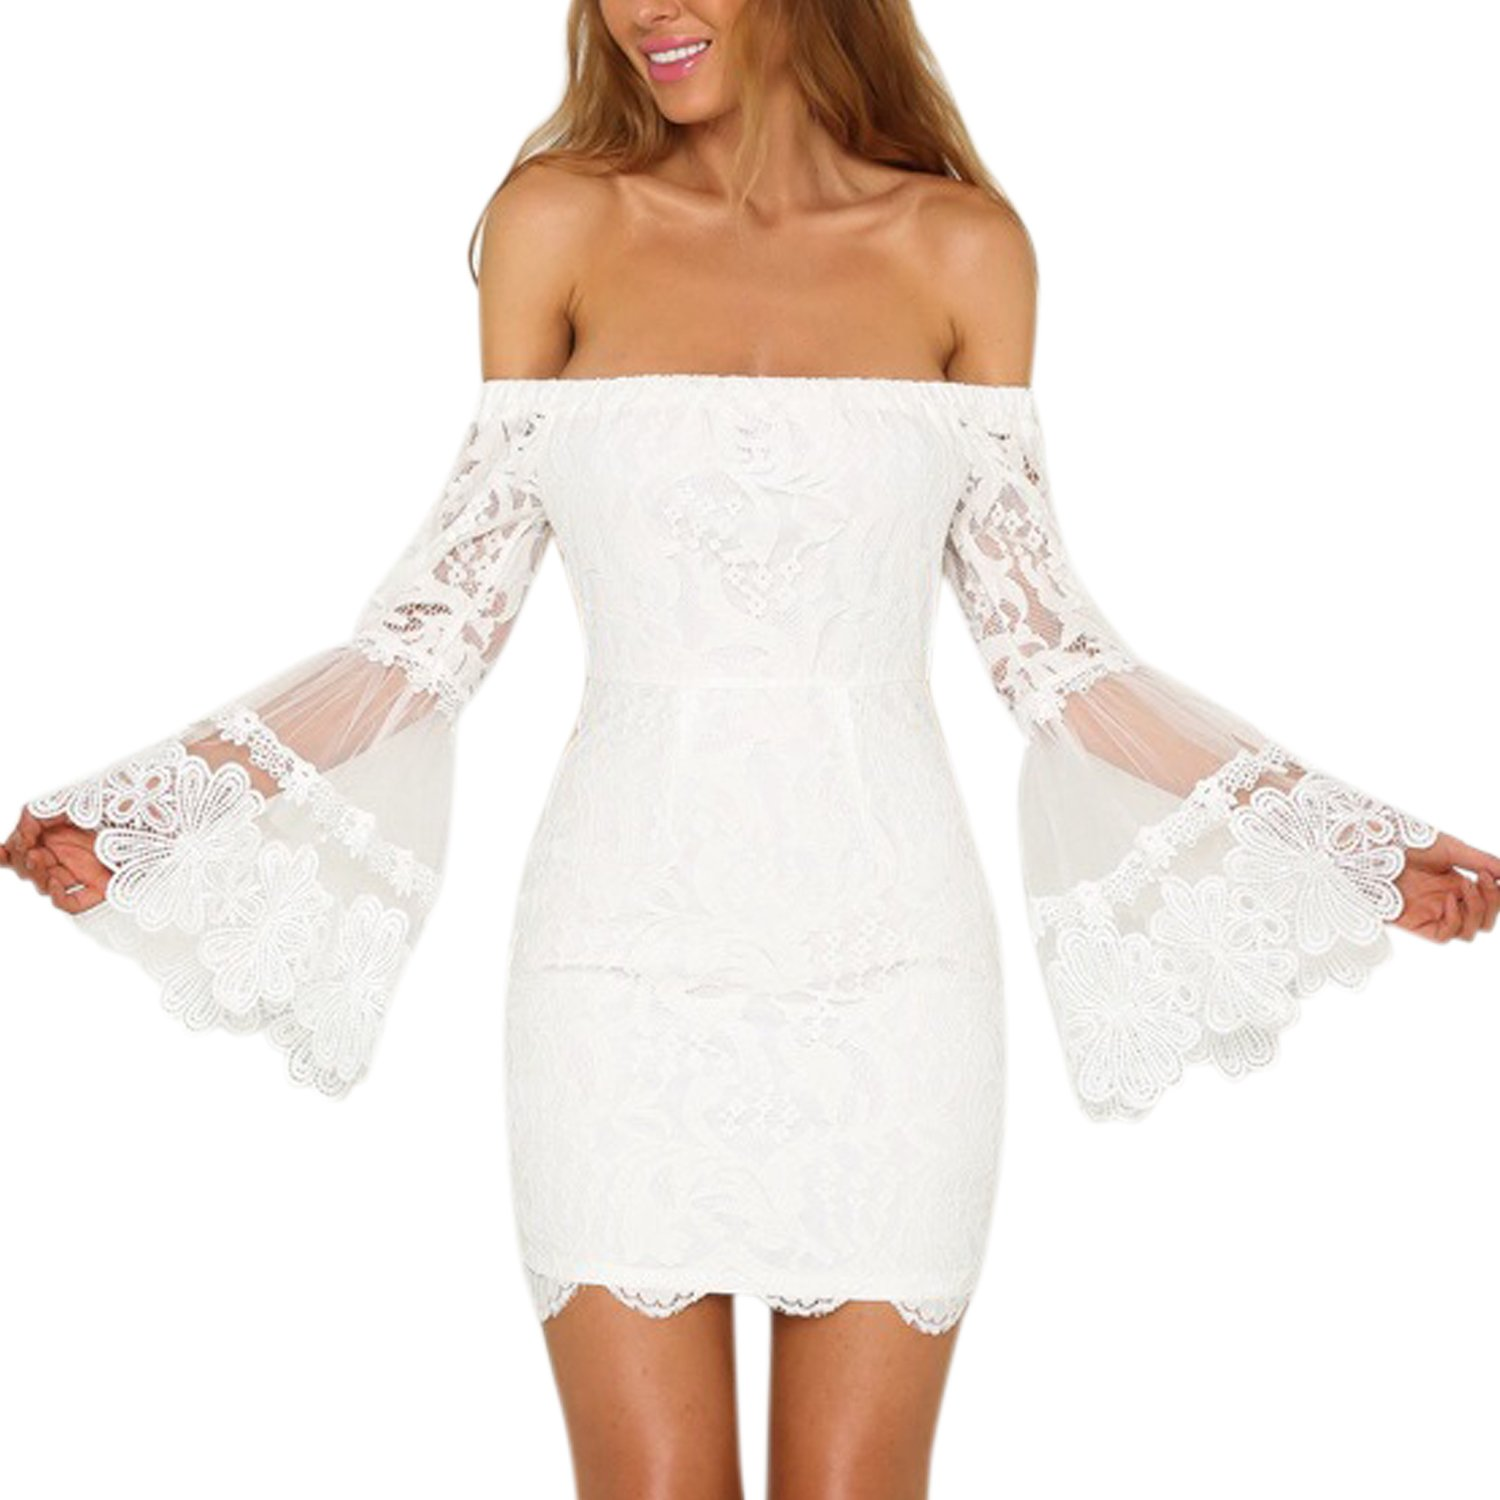 CHNS Women Off Shoulder Lace Dress Bodycon Flared Sleeves Wedding Dress